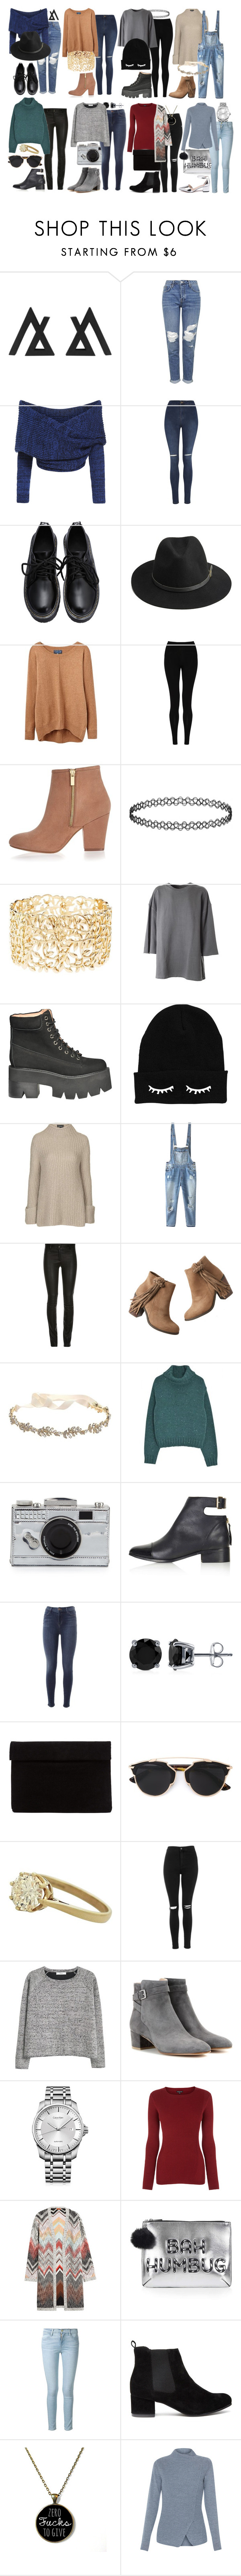 """""""Untitled #372"""" by nofarley ❤ liked on Polyvore featuring Topshop, George, BeckSöndergaard, Joules, M&S Collection, River Island, Charlotte Russe, adidas Originals, Jeffrey Campbell and Relaxfeel"""